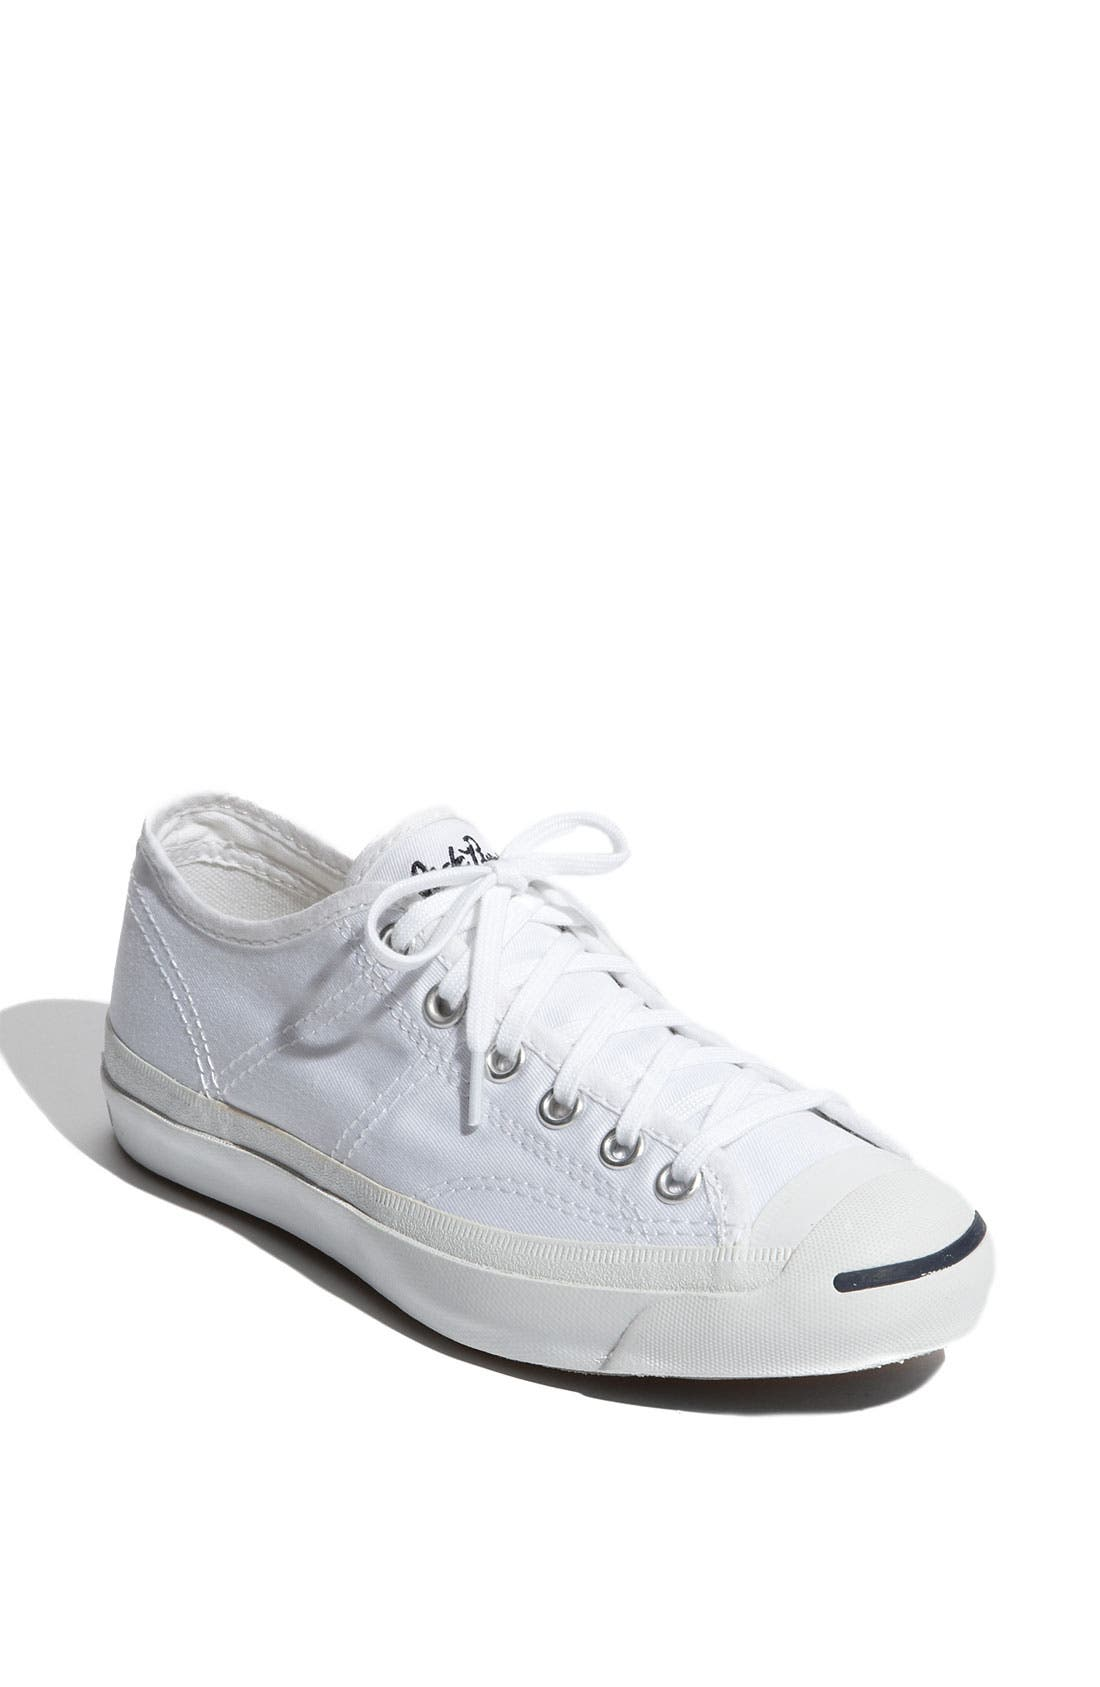 Alternate Image 1 Selected - Converse 'Jack Purcell - Helen' Sneaker